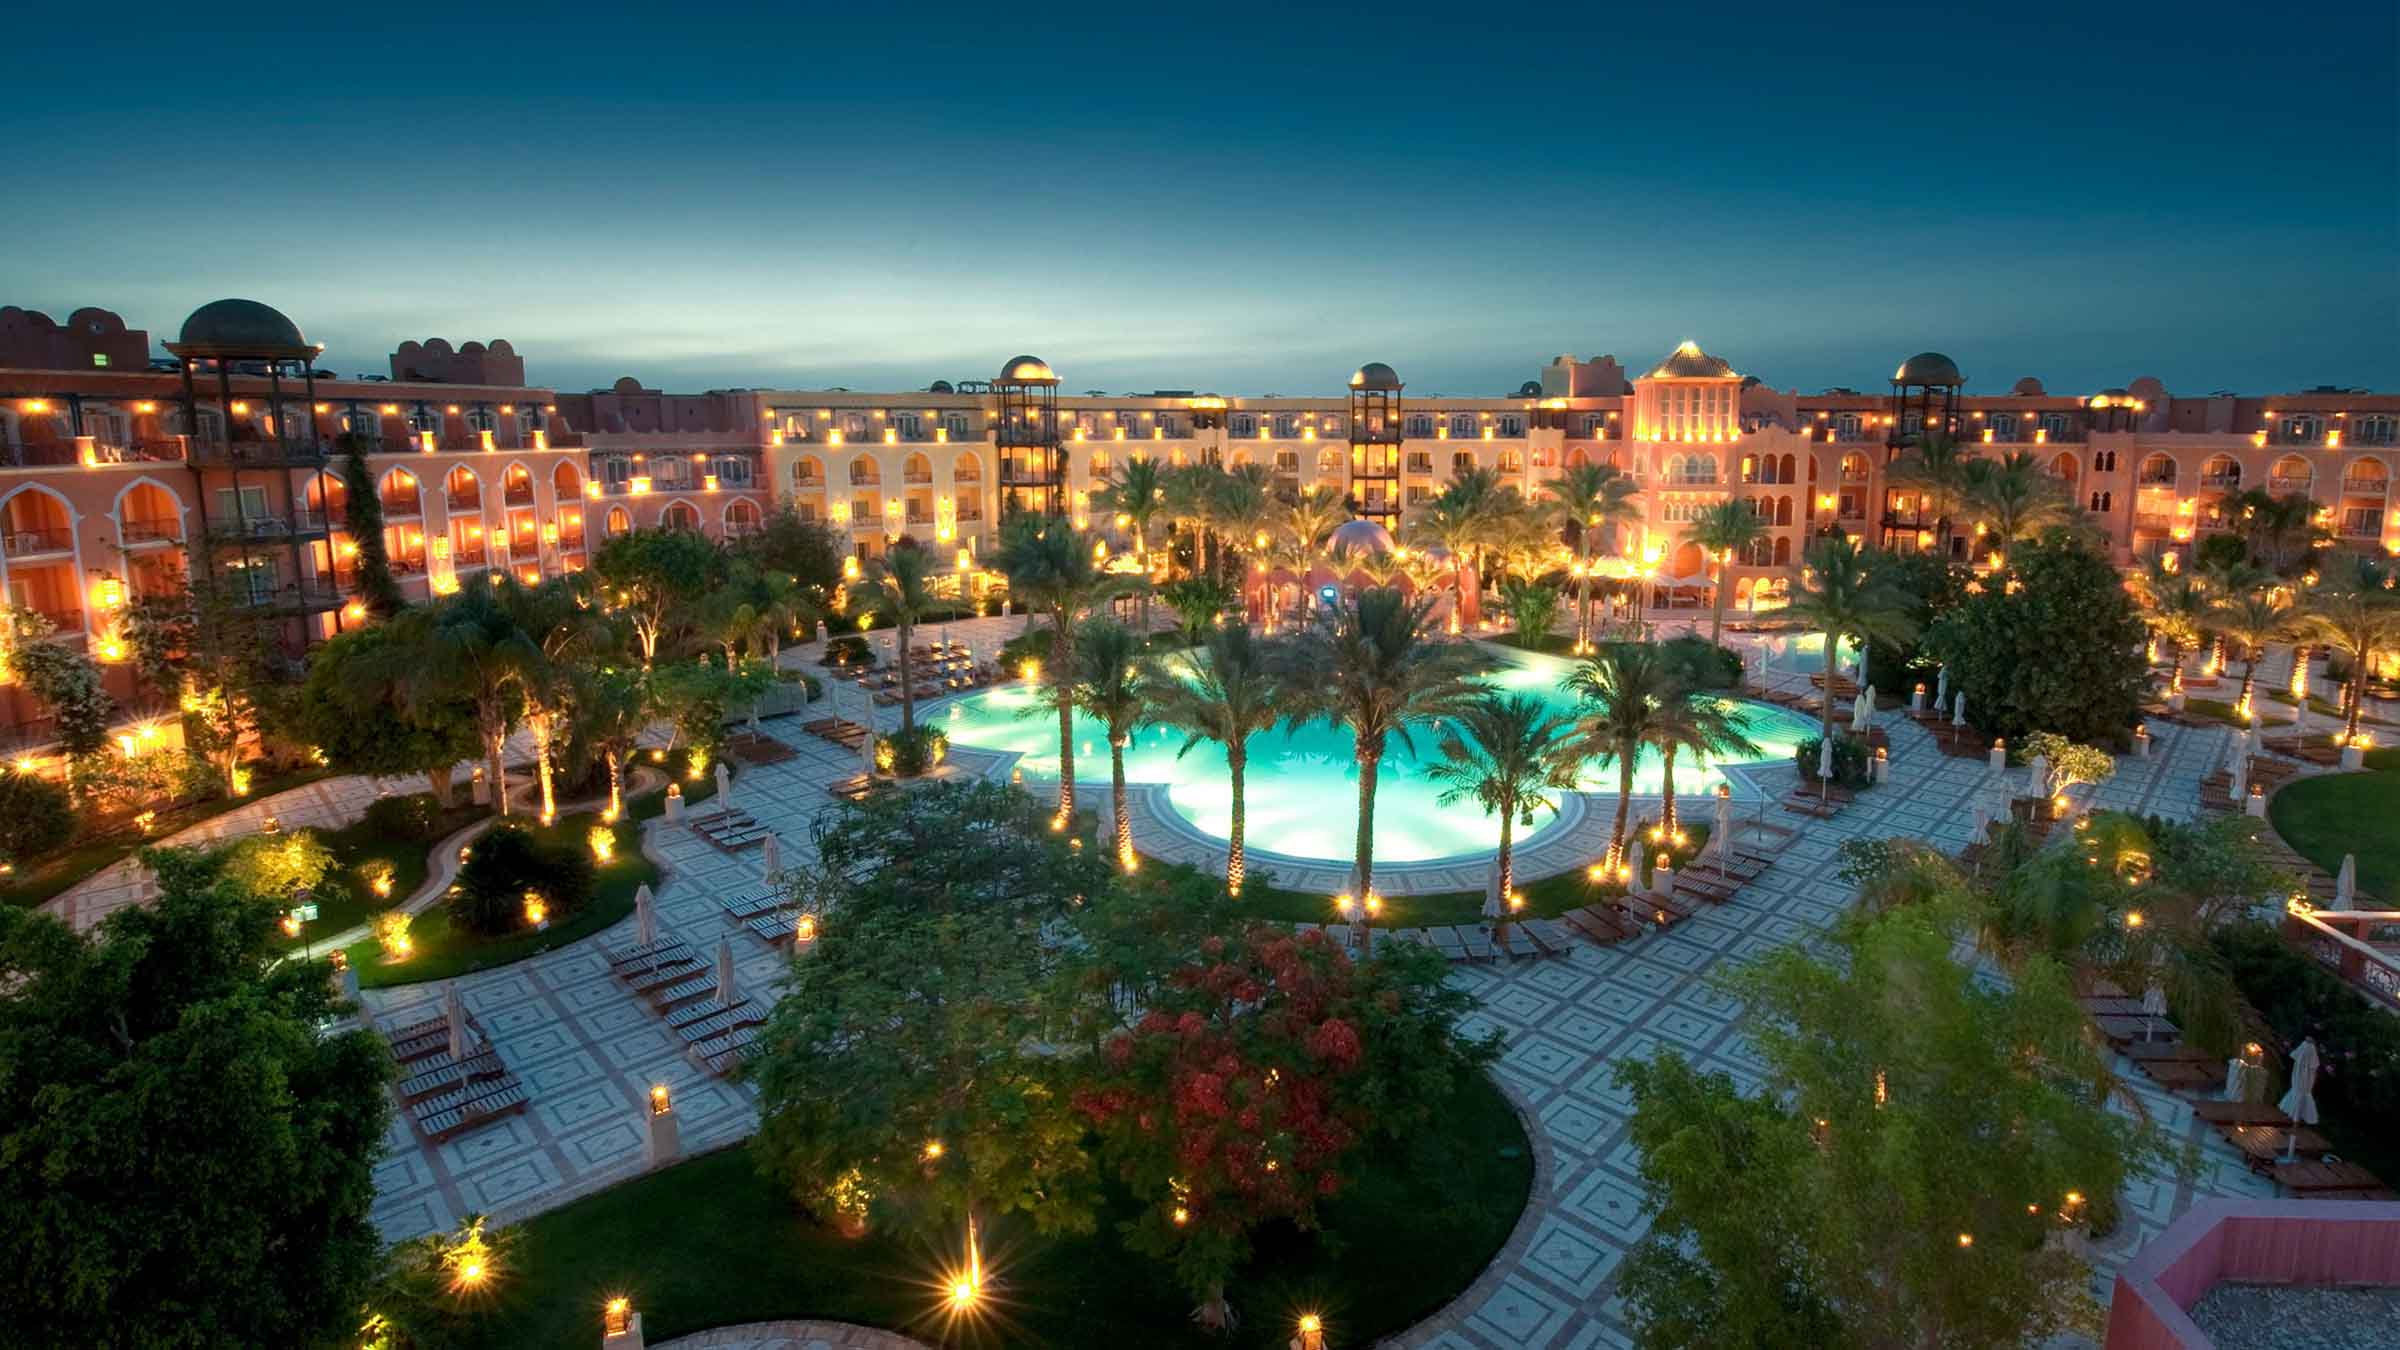 The Grand Resort